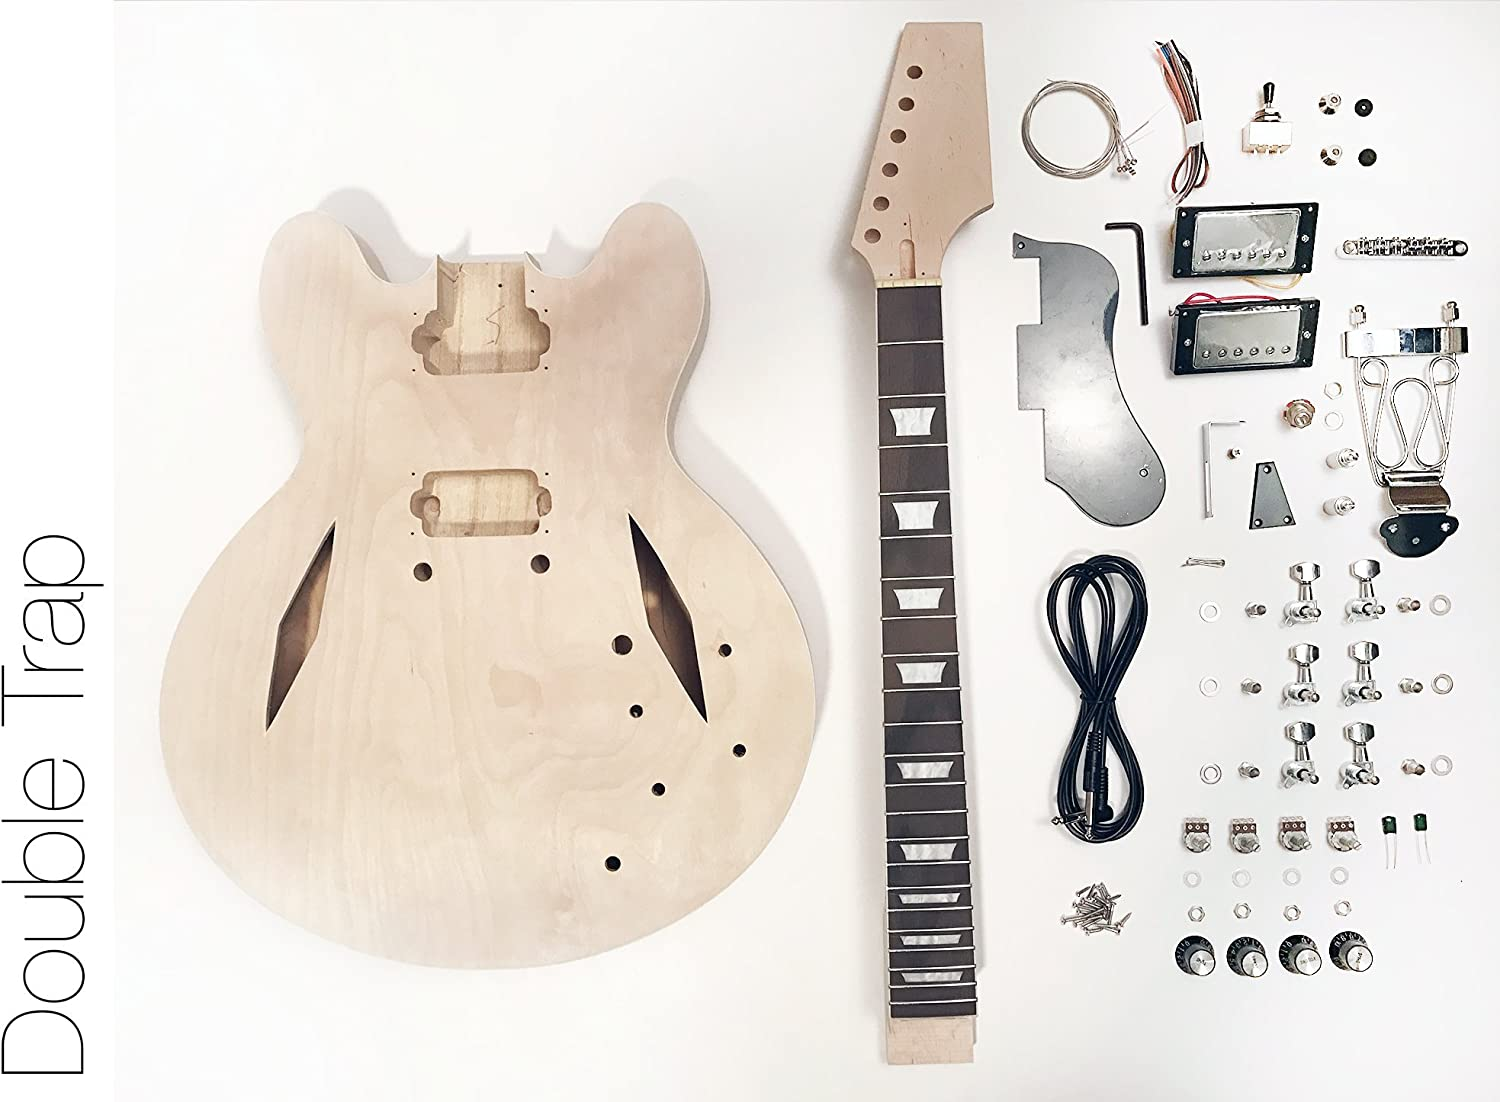 DIY Kit de guitarra eléctrica? Semi hueca diamond construir su ...